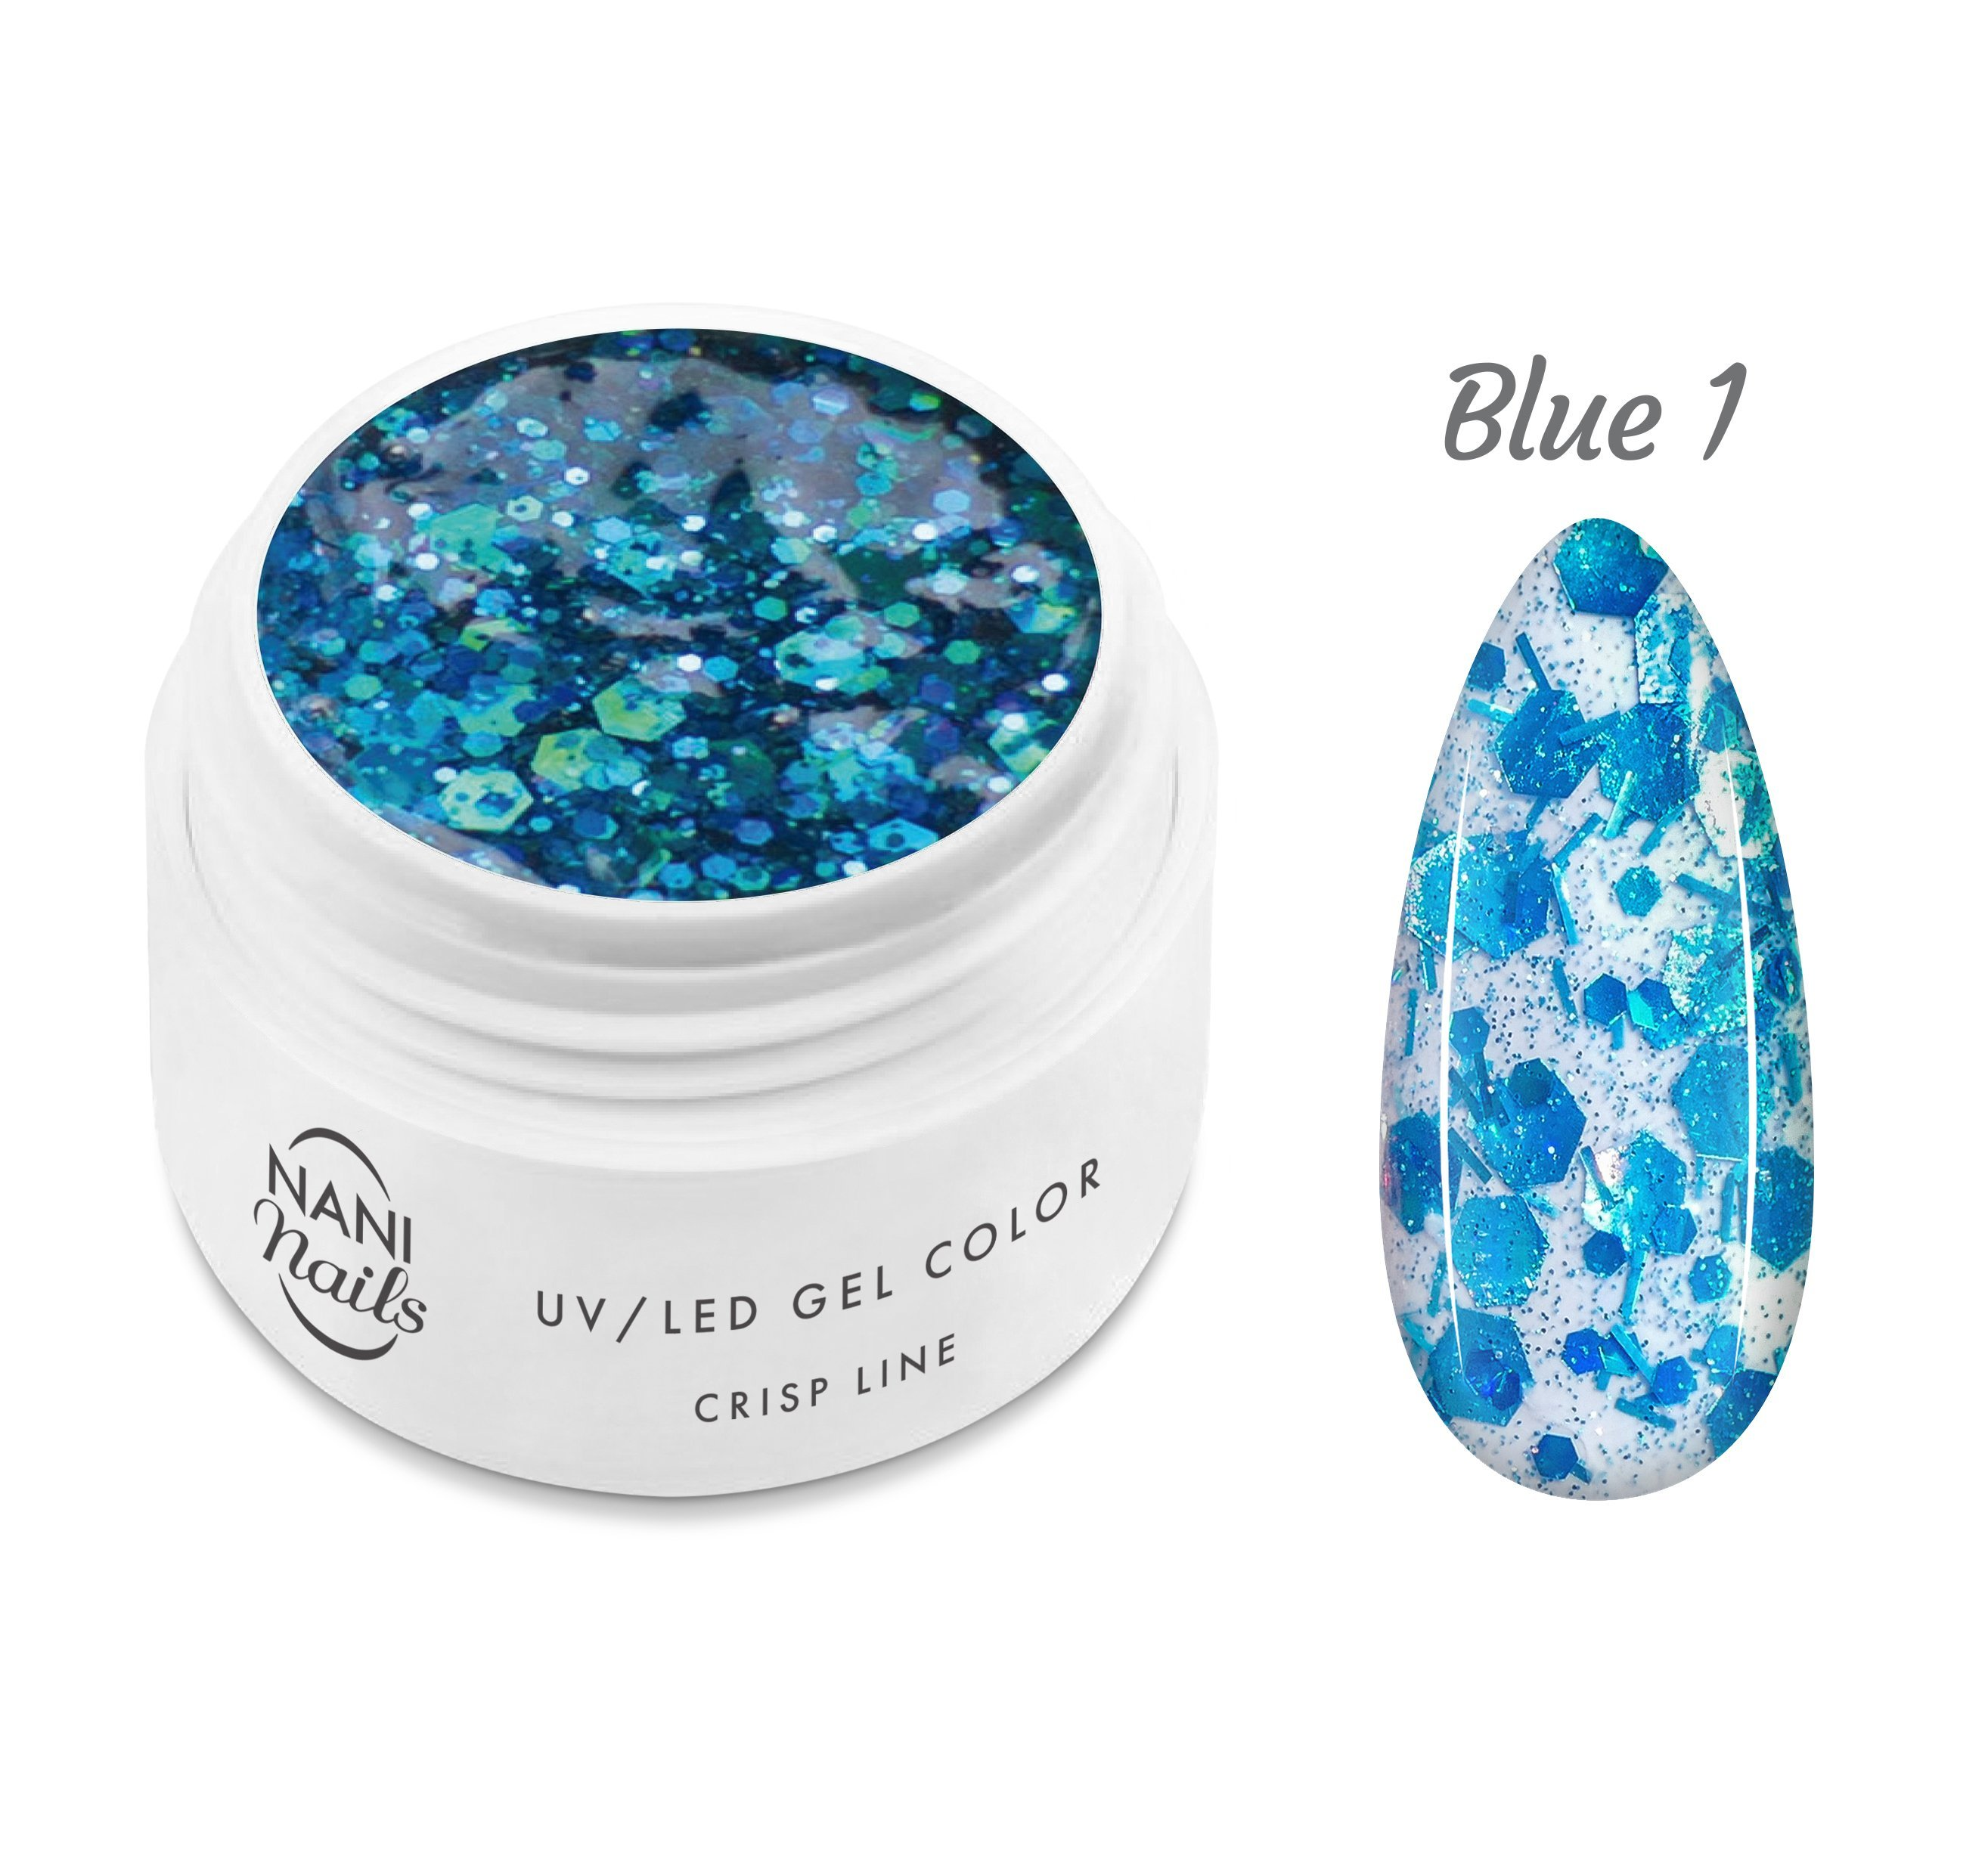 NANI UV gél Crisp Line 5 ml - Blue